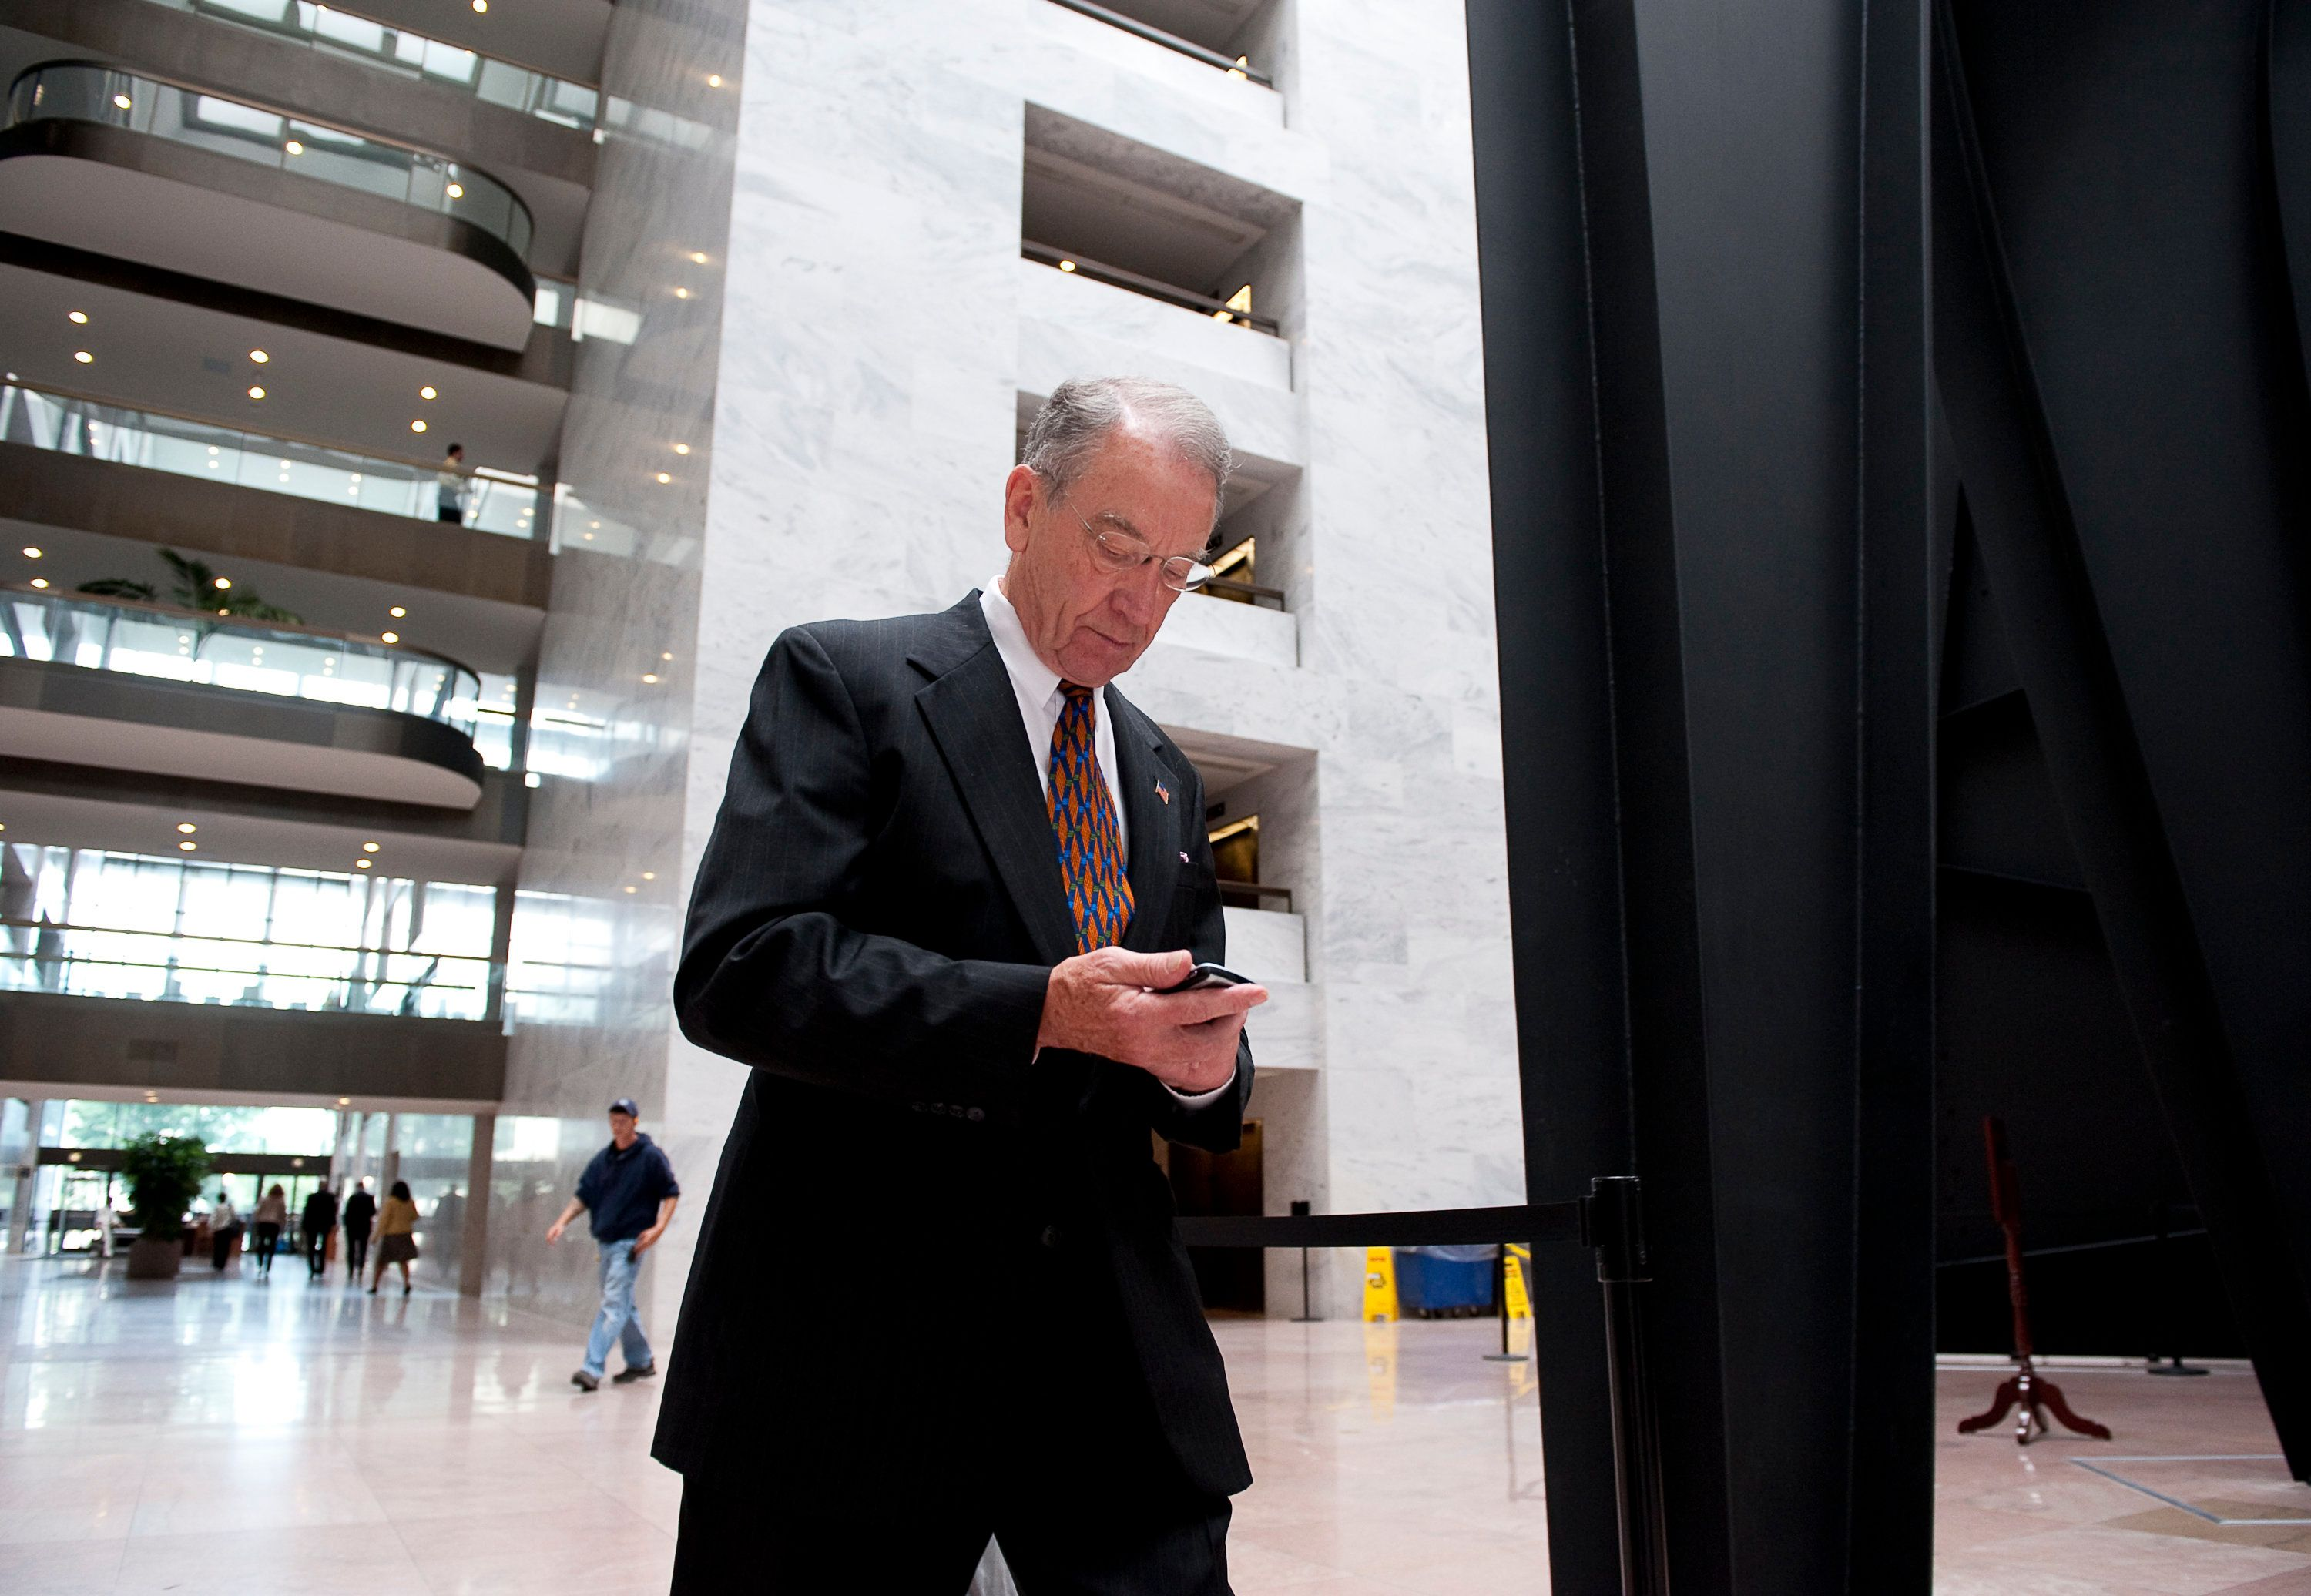 Sen. Charles Grassely, R-Iowa, sends out a tweet while he walks from his office to a press interview, June 16, 2009. Grassley is one of an estimated 30 senators and more than 100 House members who use Twitter, quite a development in an institution where messengers still bow when they enter the Senate chamber.  (Photo by Cliff Owen/MCT/MCT via Getty Images)